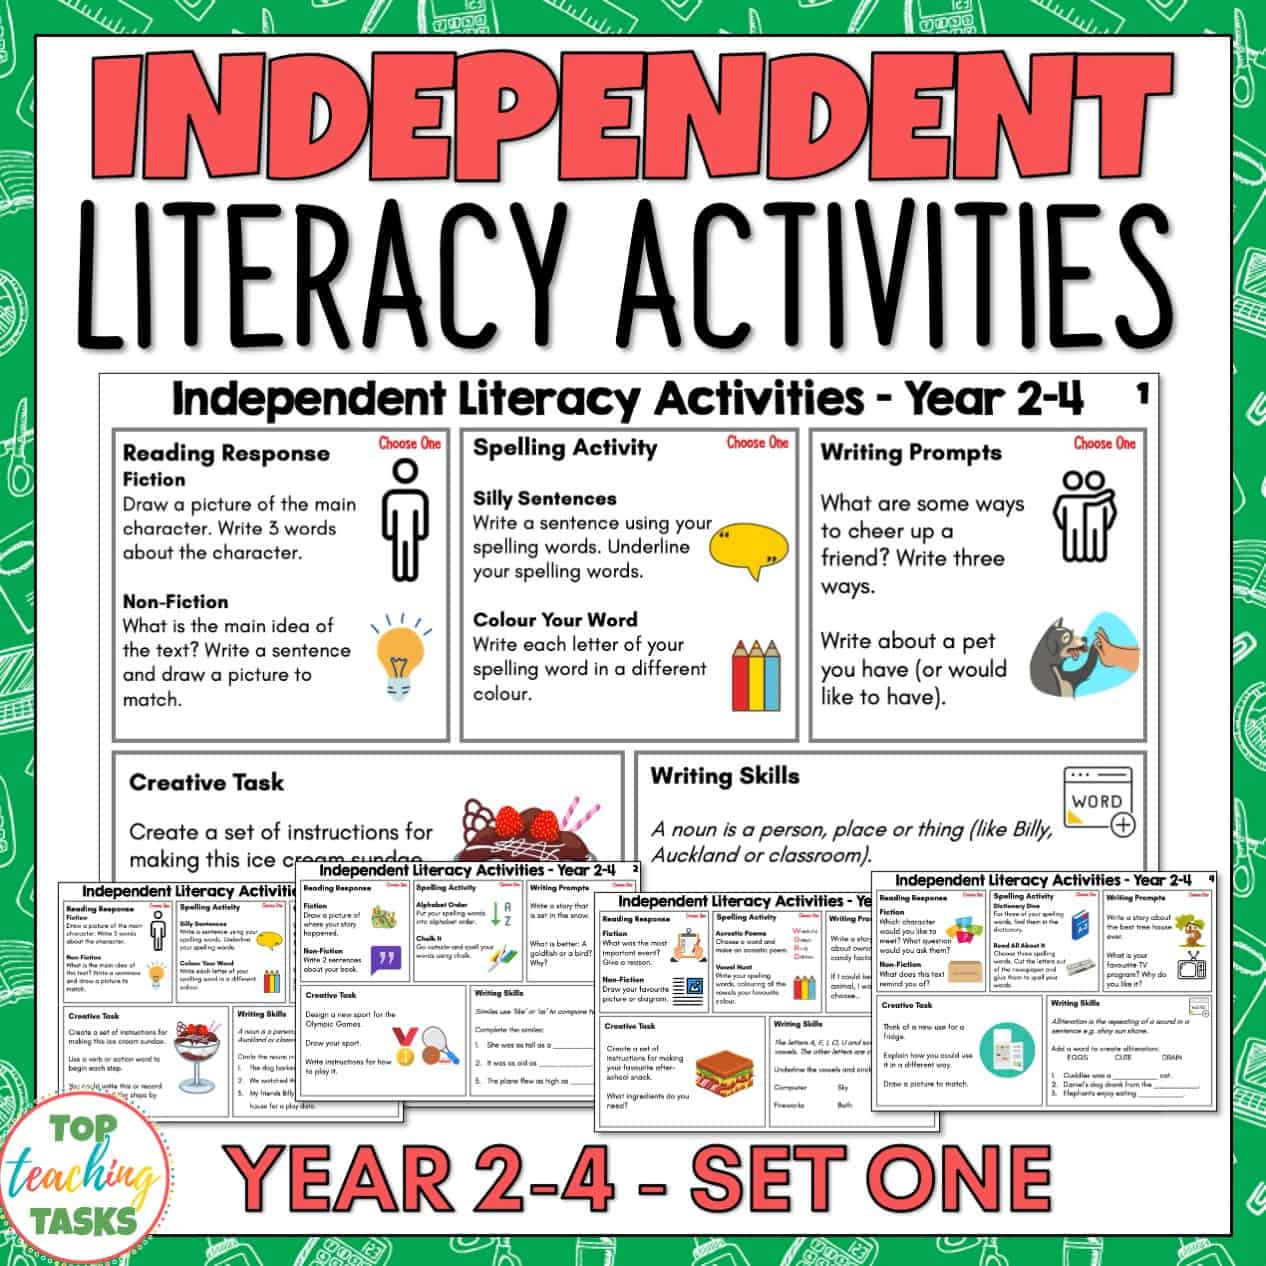 Independent Literacy Activities Year 2-4